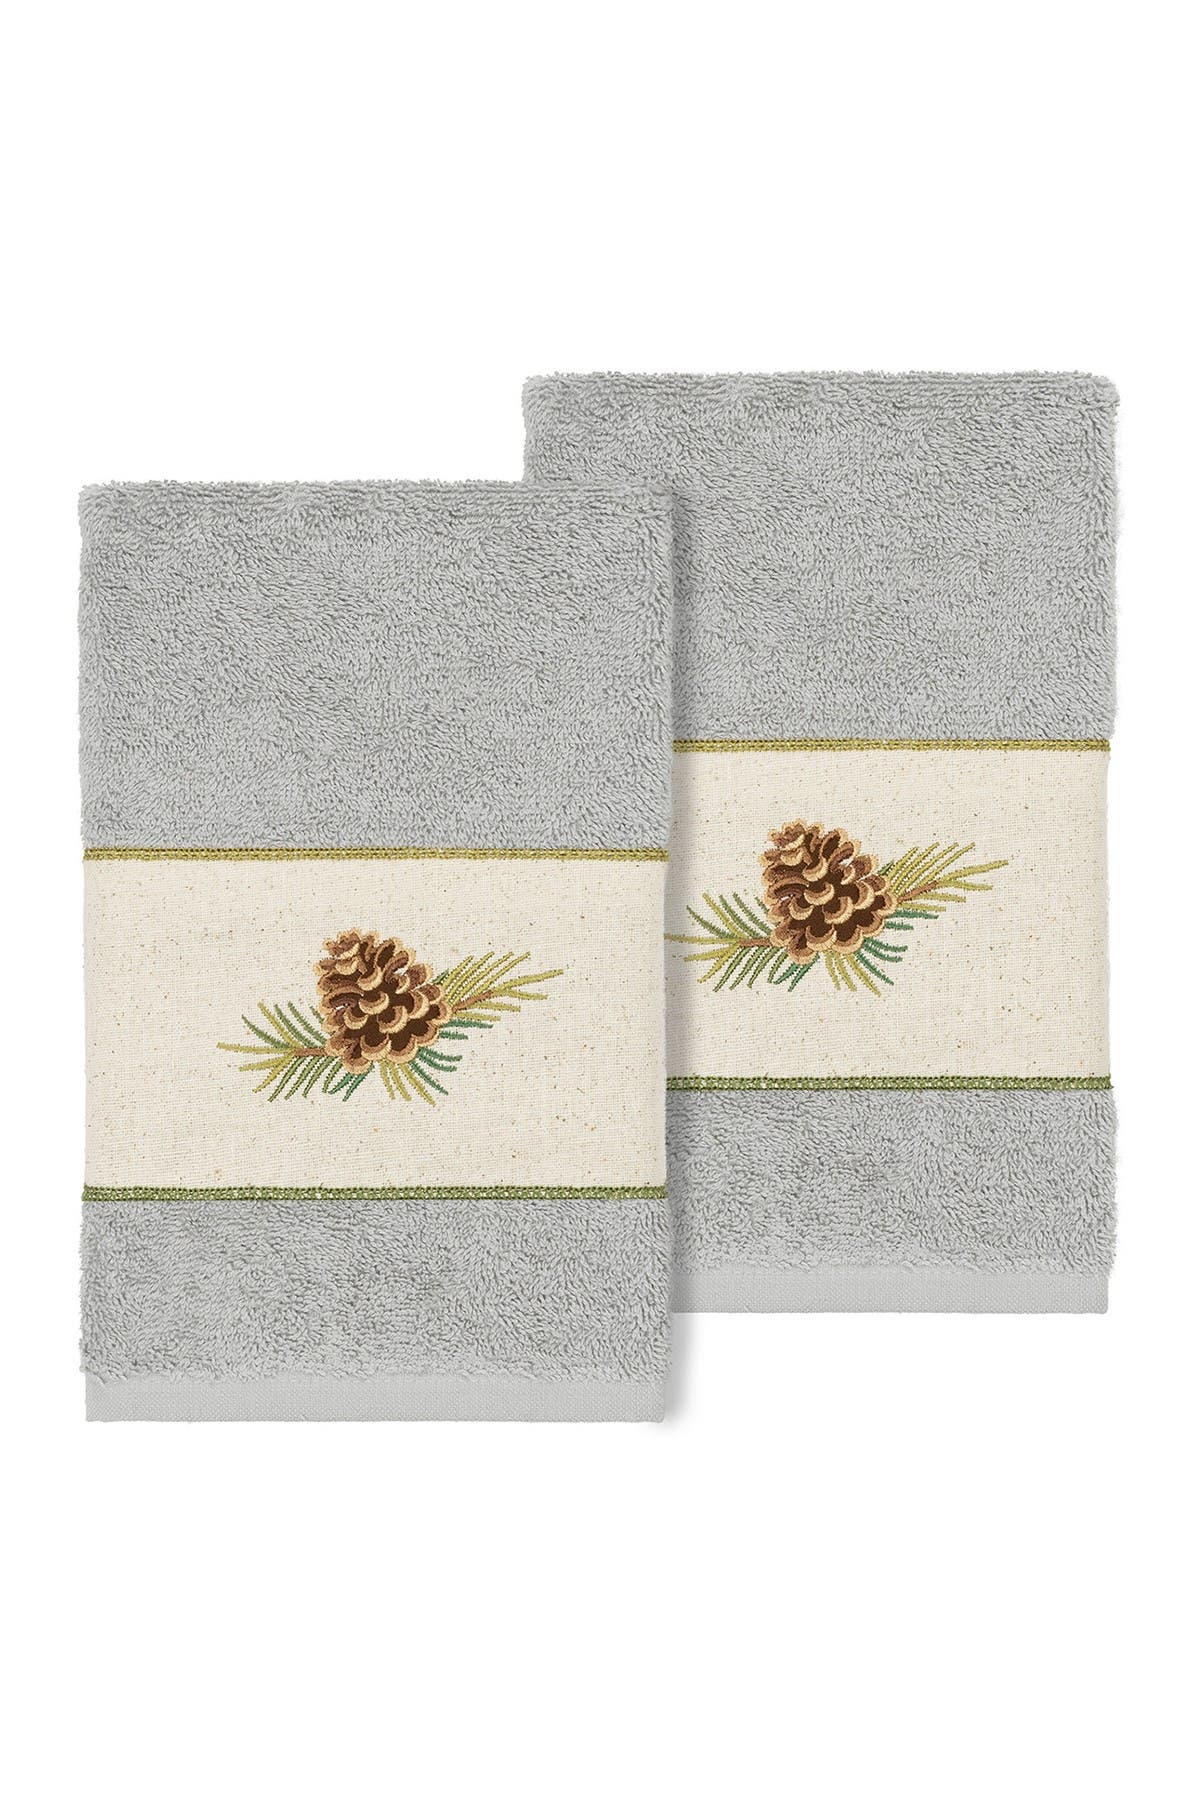 Image of LINUM HOME Pierre Embellished Hand Towel - Set of 2 - Light Gray